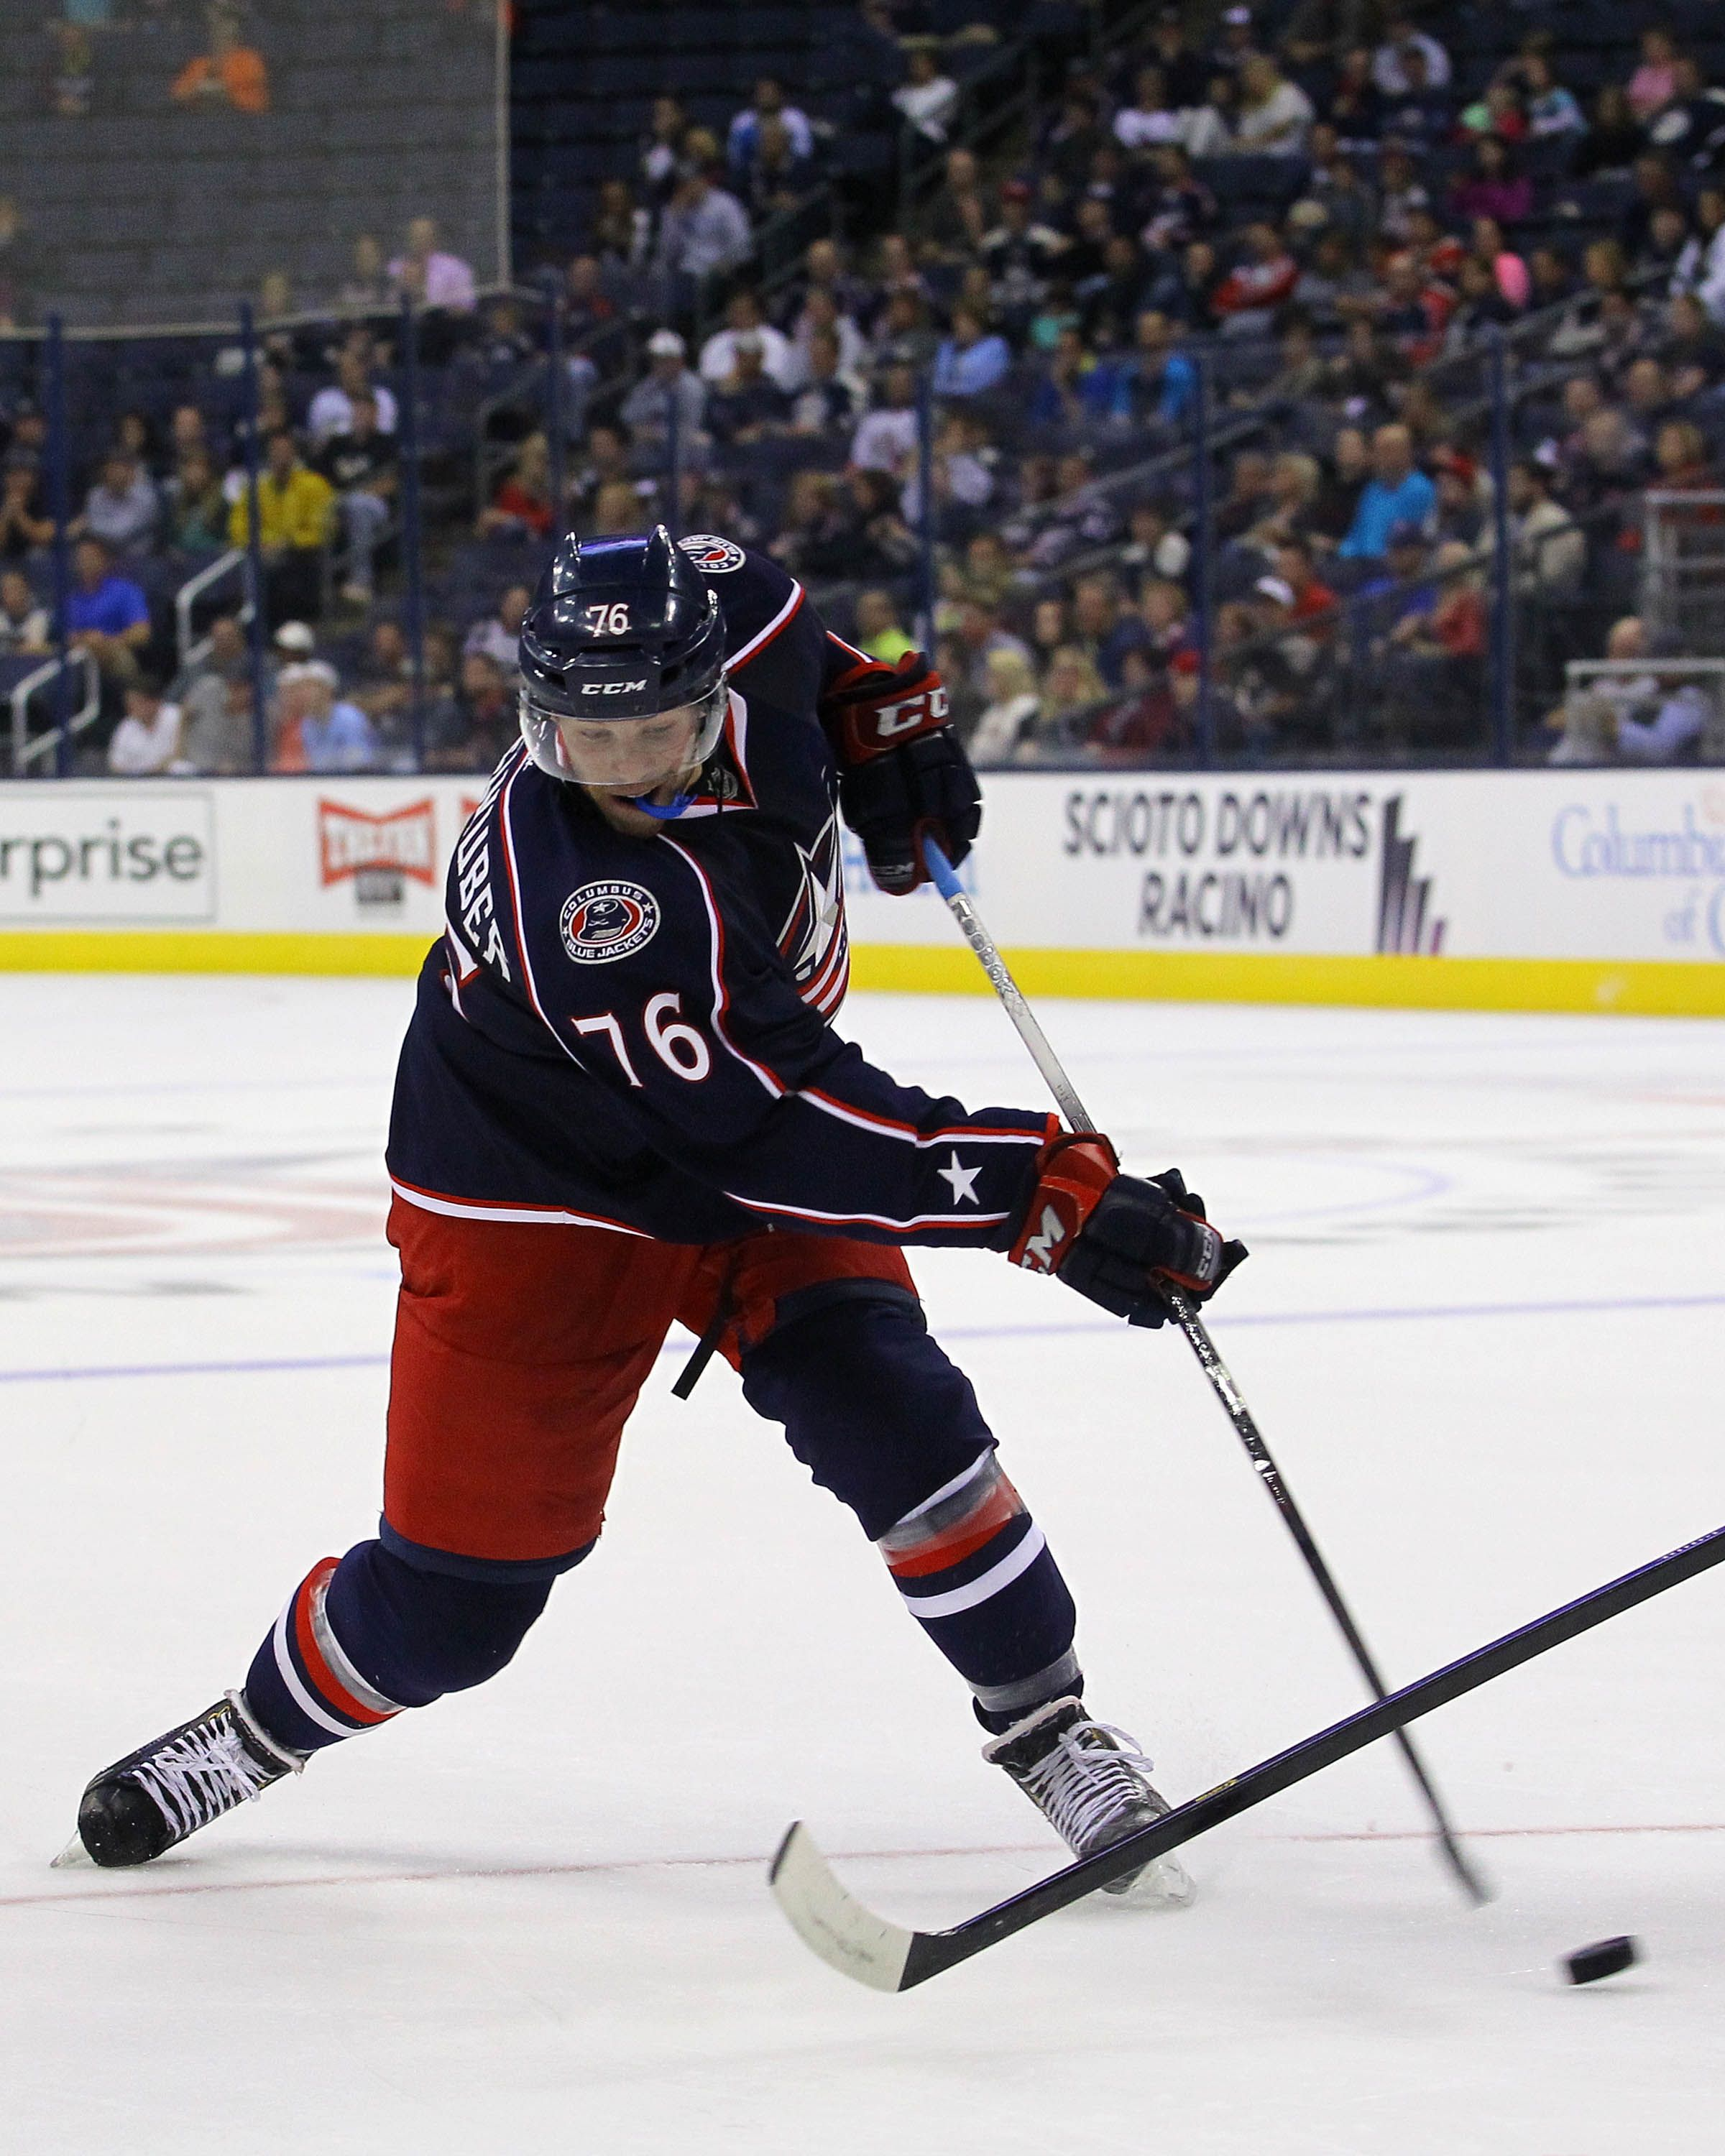 CrowdCam Hot Shot: Columbus Blue Jackets forward Trent Vogelhuber takes a shot on goal during the 2nd period of the game against the Pittsburgh Penguins at Nationwide Arena. Photo by Rob Leifheit